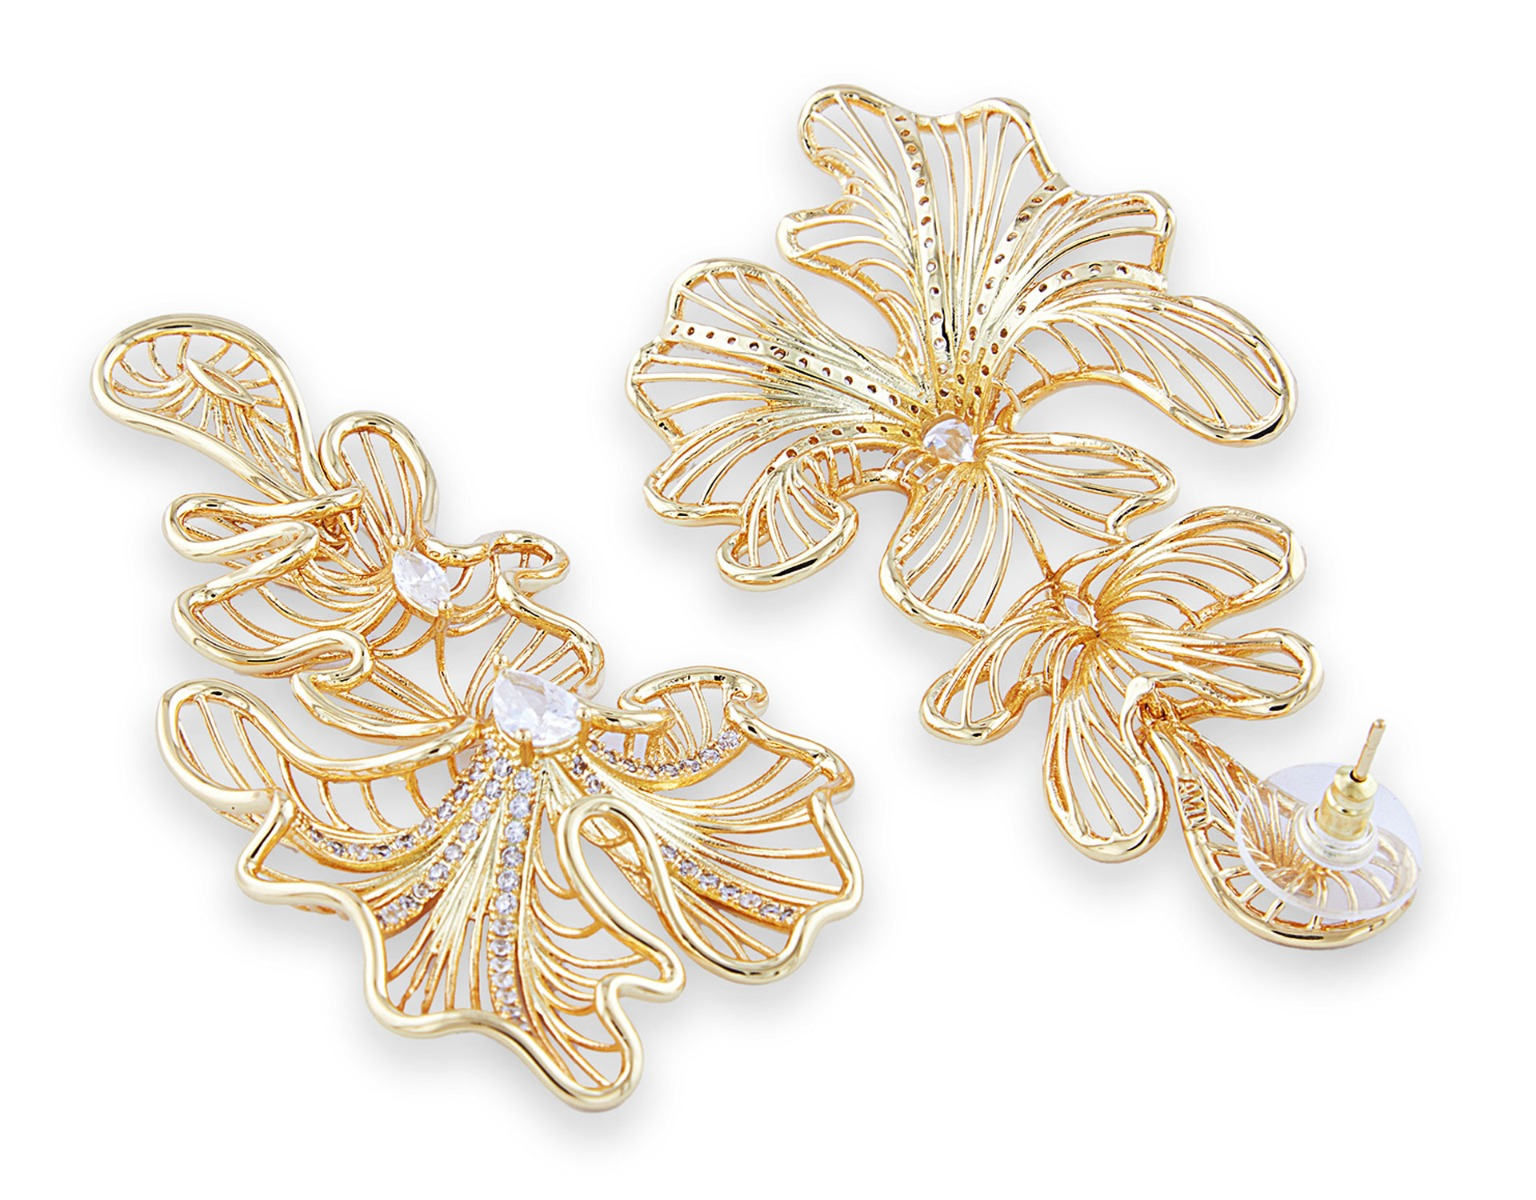 Ruffle Earrings